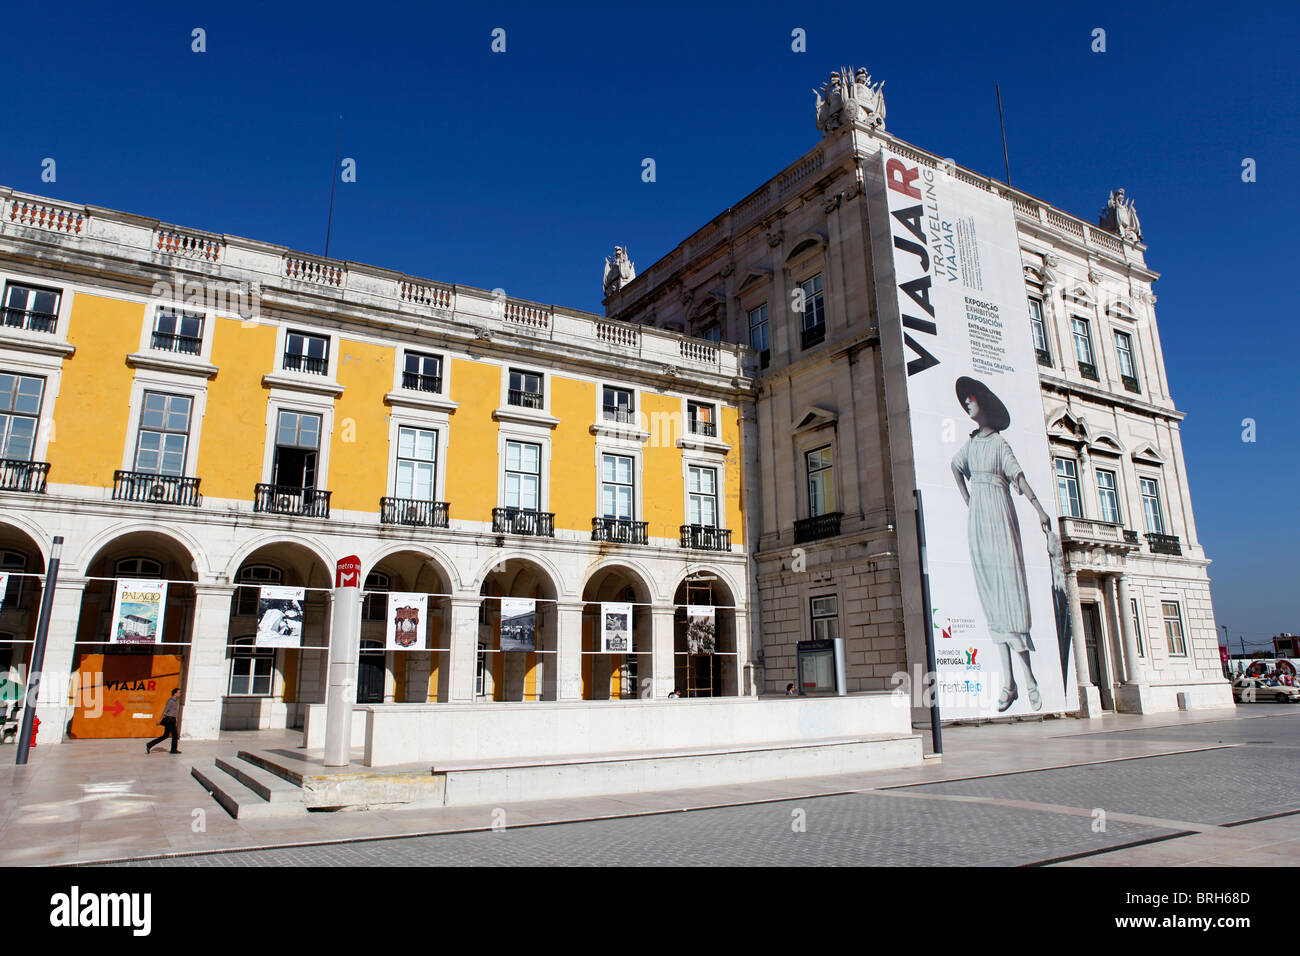 Advertising on one of the buildings of the Praca do Comercio for the Viajar (Travelling) exhibition in Lisbon, Portugal. - Stock Image